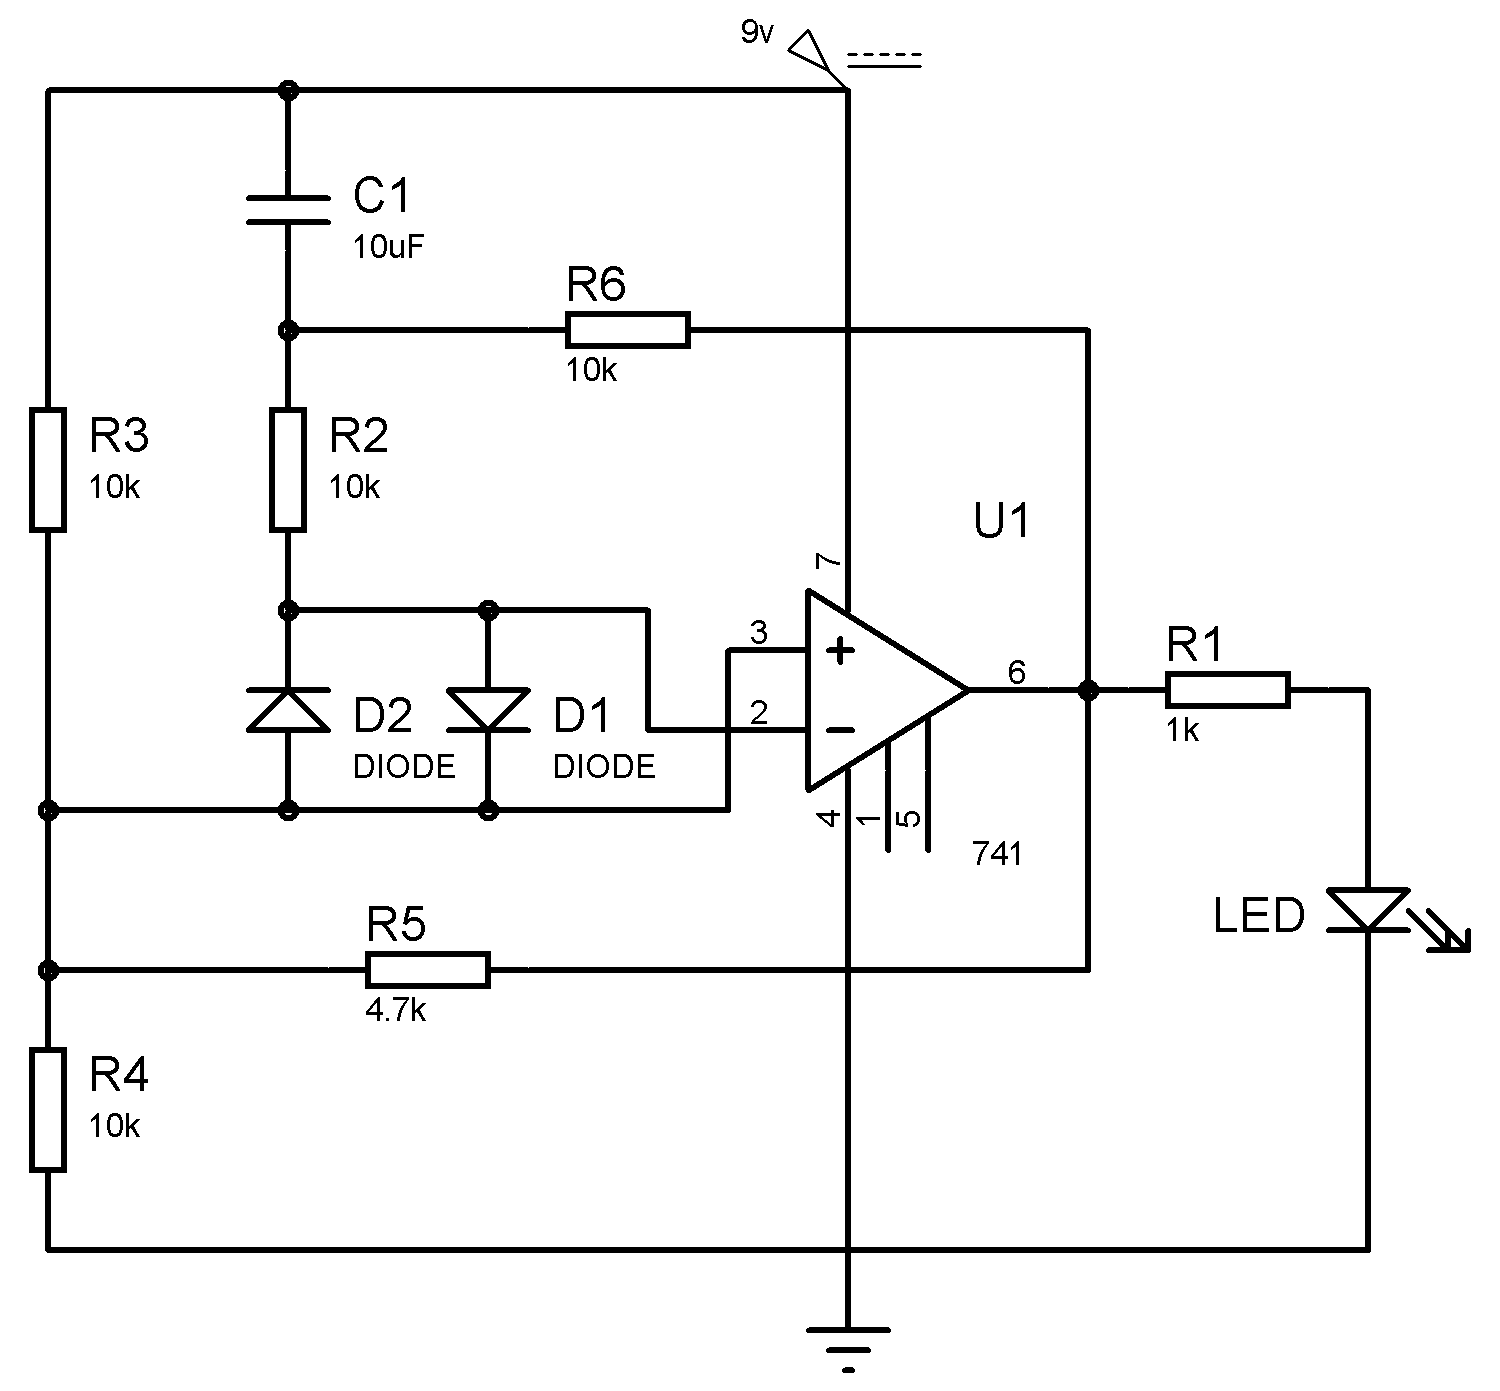 hight resolution of operational amplifier opampic741 looks like a small chip the 741 ic op amp comprises of eight pins in an ic 741 op amp pin2 and pin6 are the input and